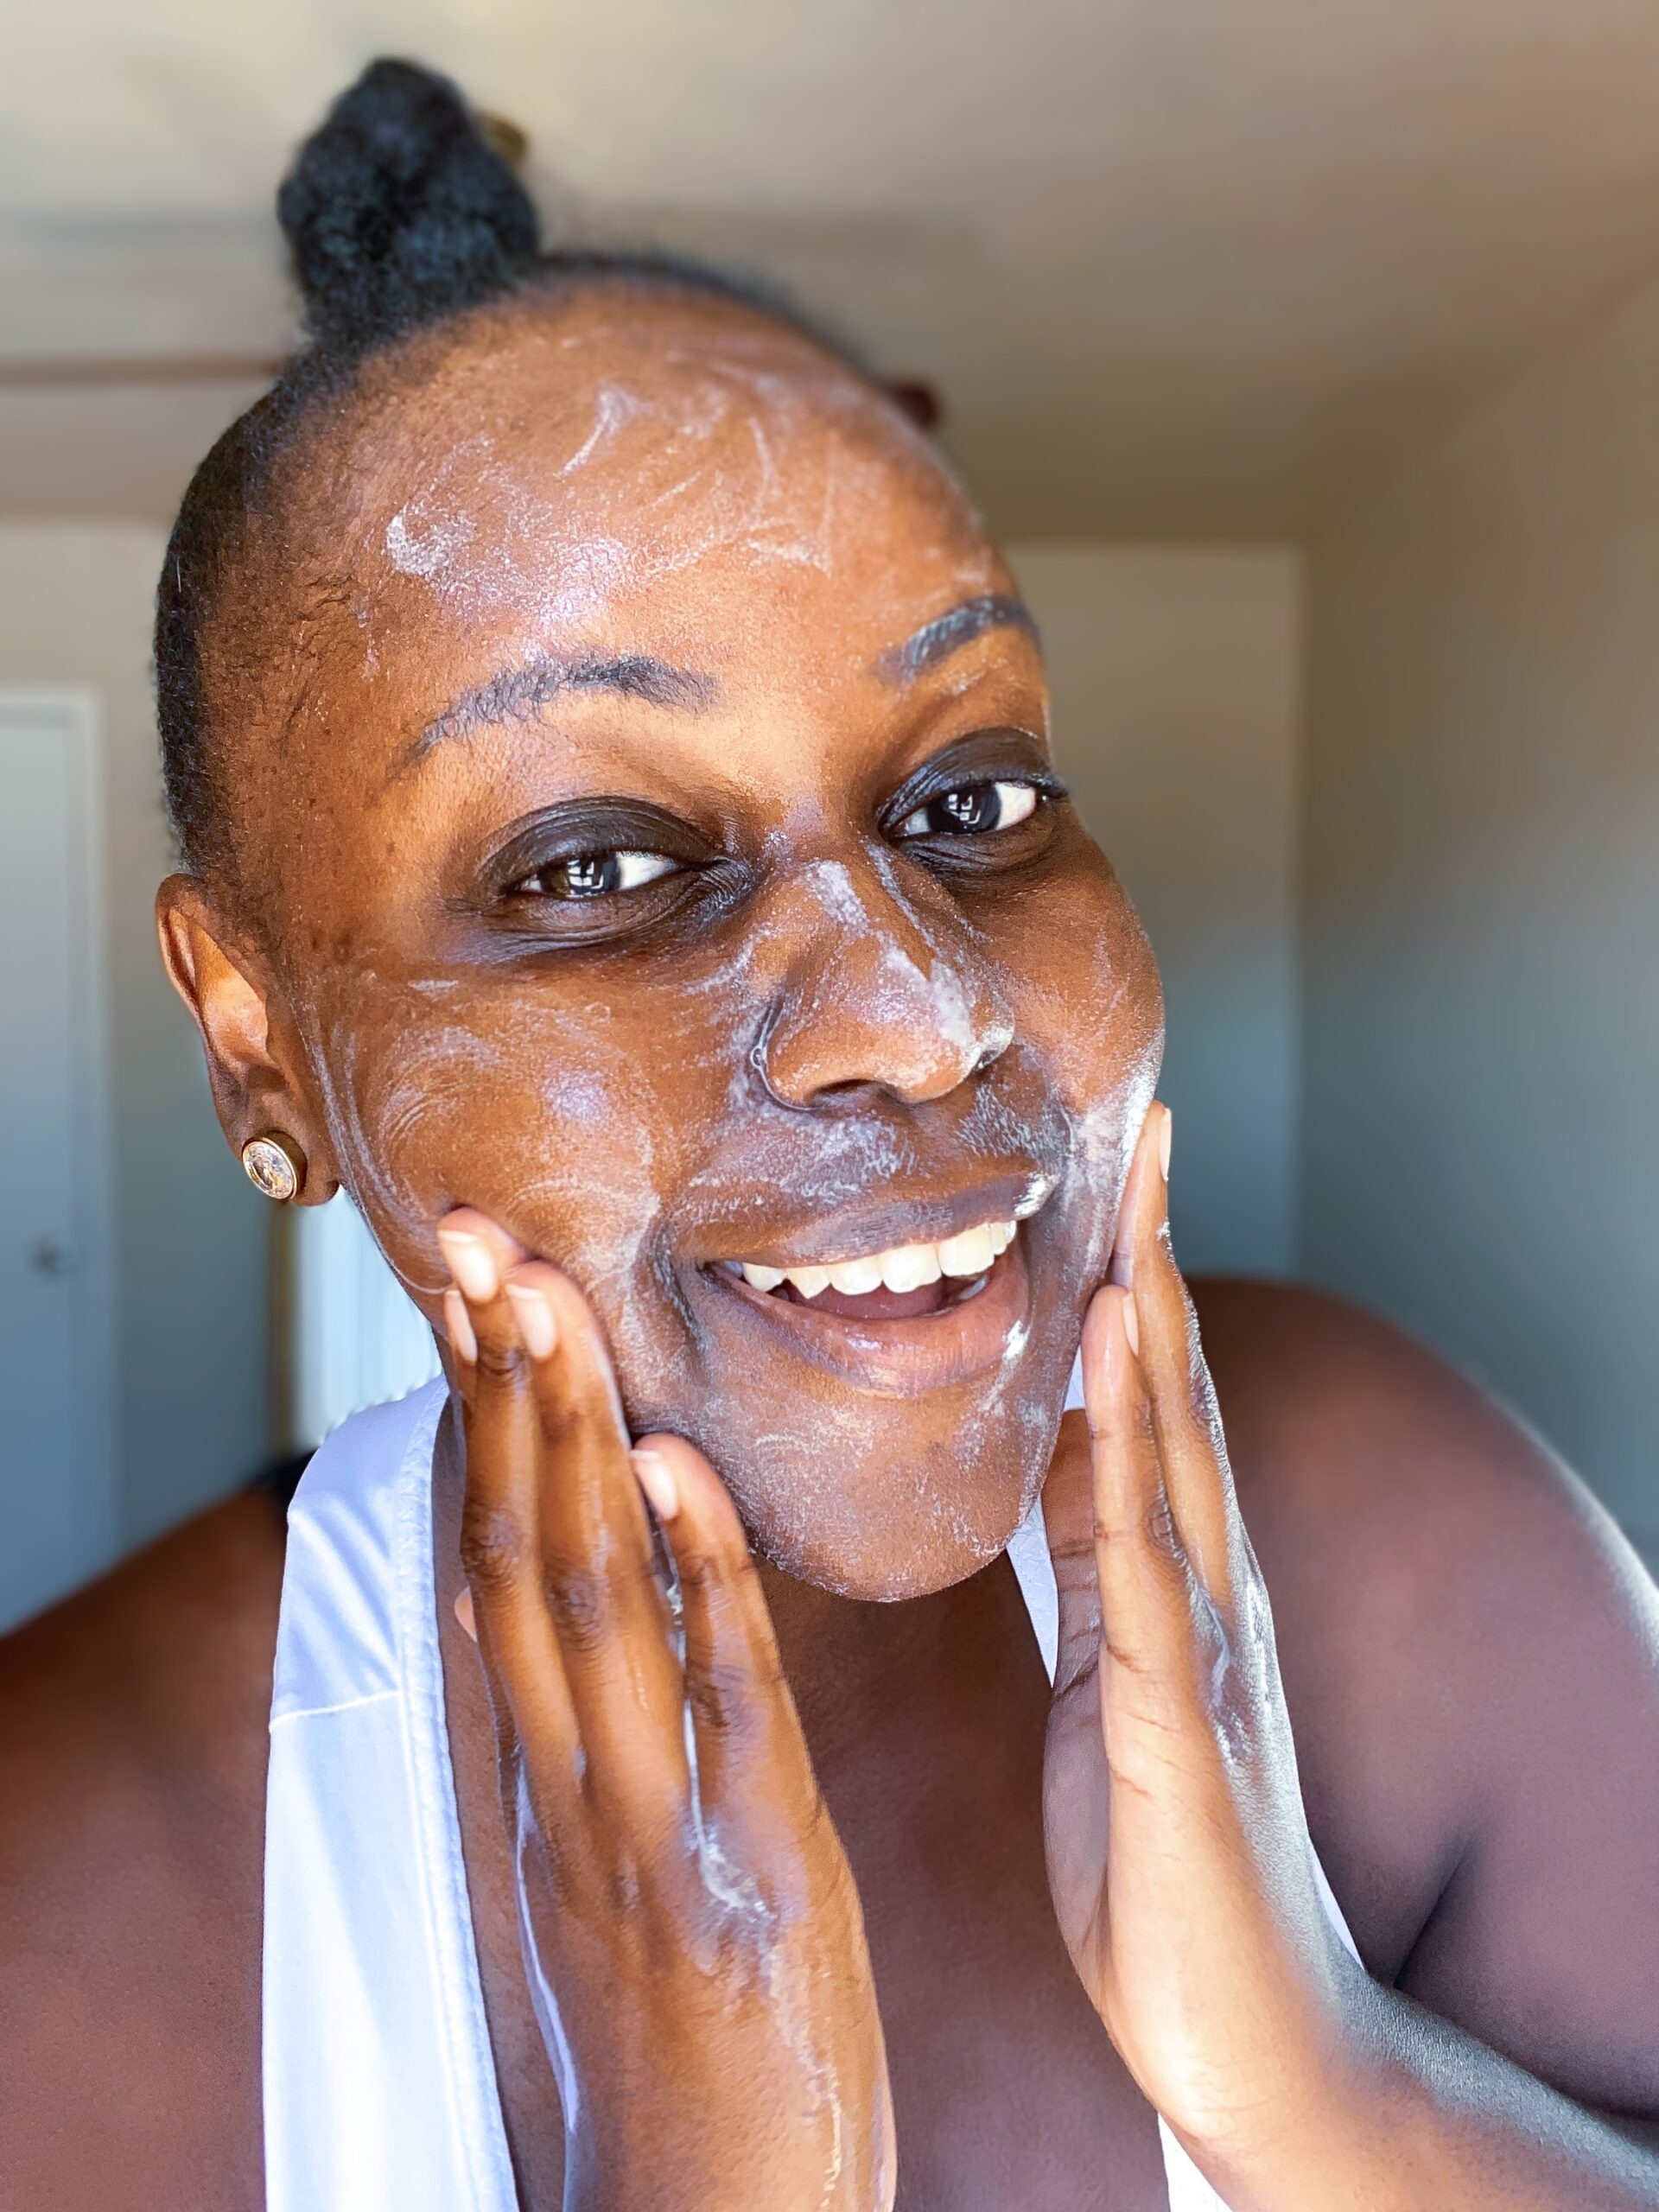 dark skin beauty blogger, sephora vib rouge blogger, texas blogger, texas influencer, dark skin, best moisturizers for winter for black people, most hydrating moisturizers,SOL DE JANEIRO, New Year New Skin, Daytime Skincare Routine, sephora haul, texas houston beauty blogger,